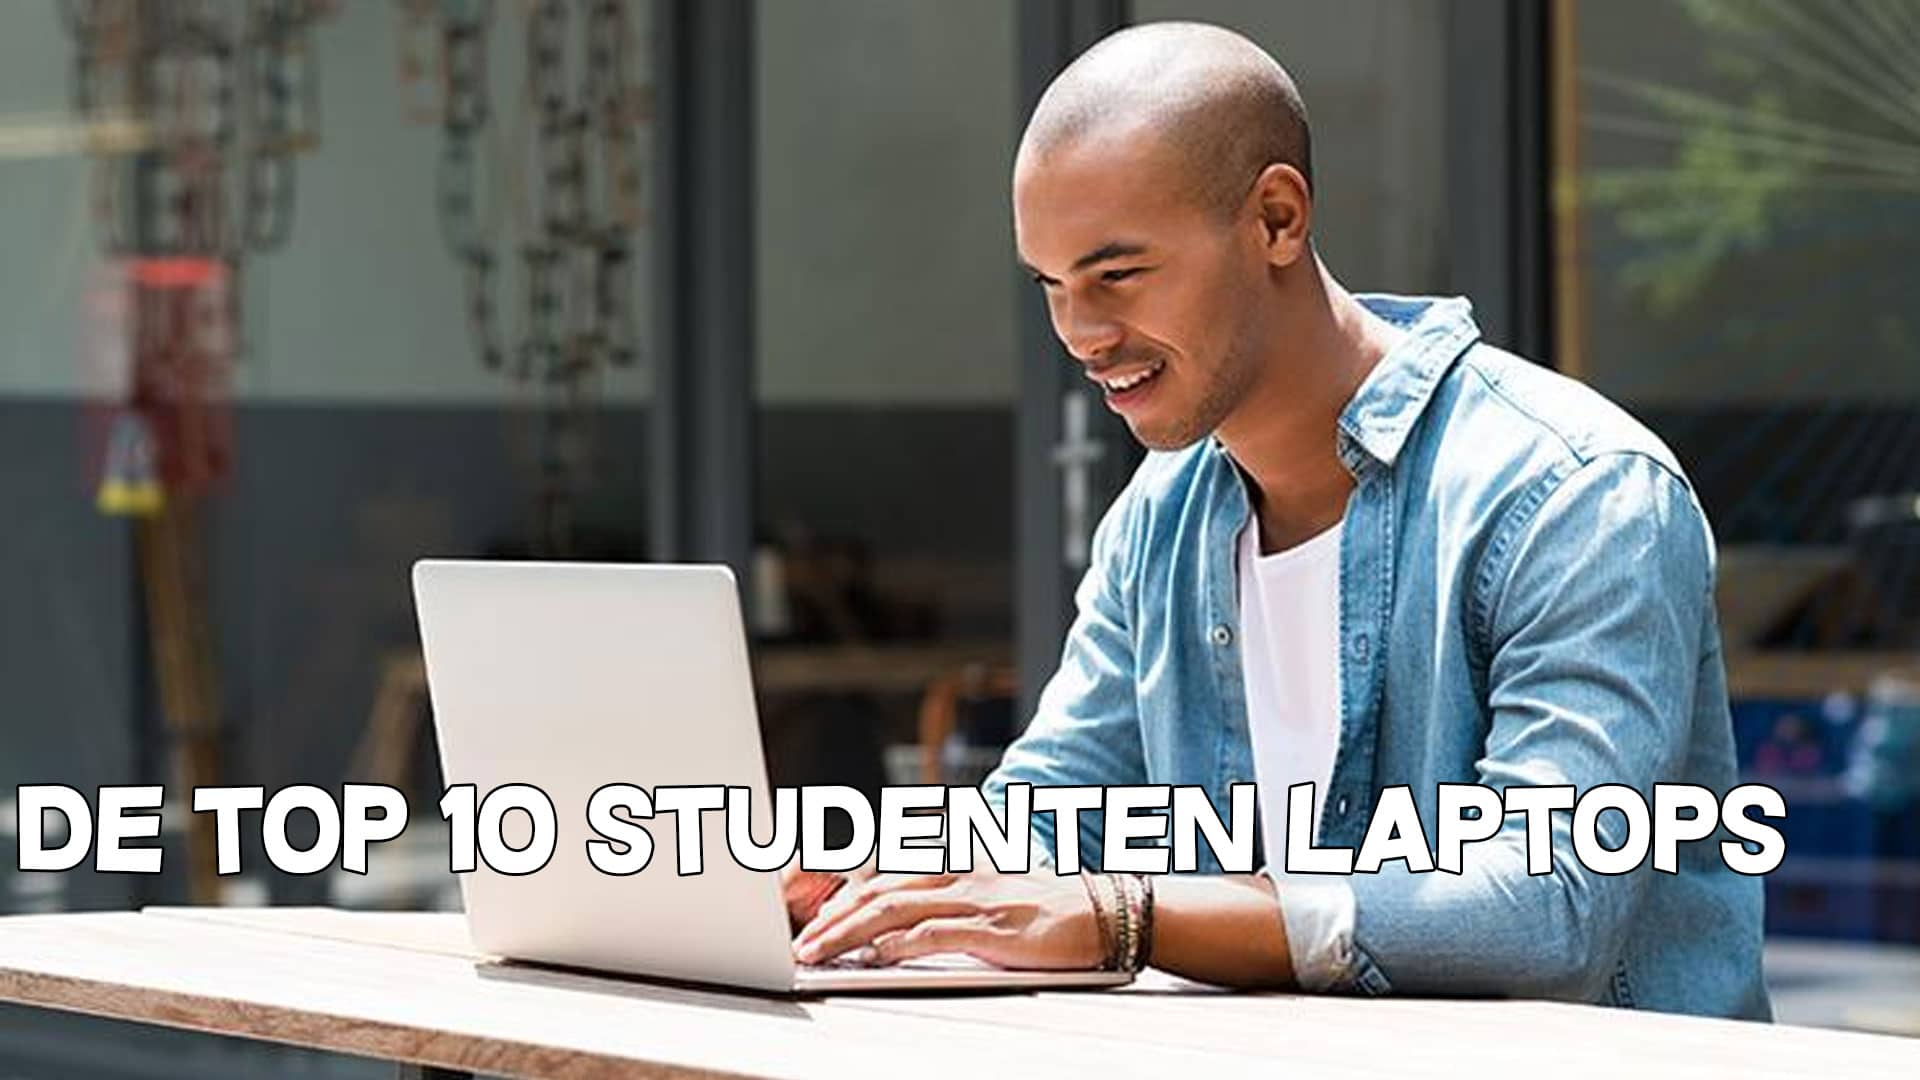 Top 10 studenten laptops - beste studenten keuzes